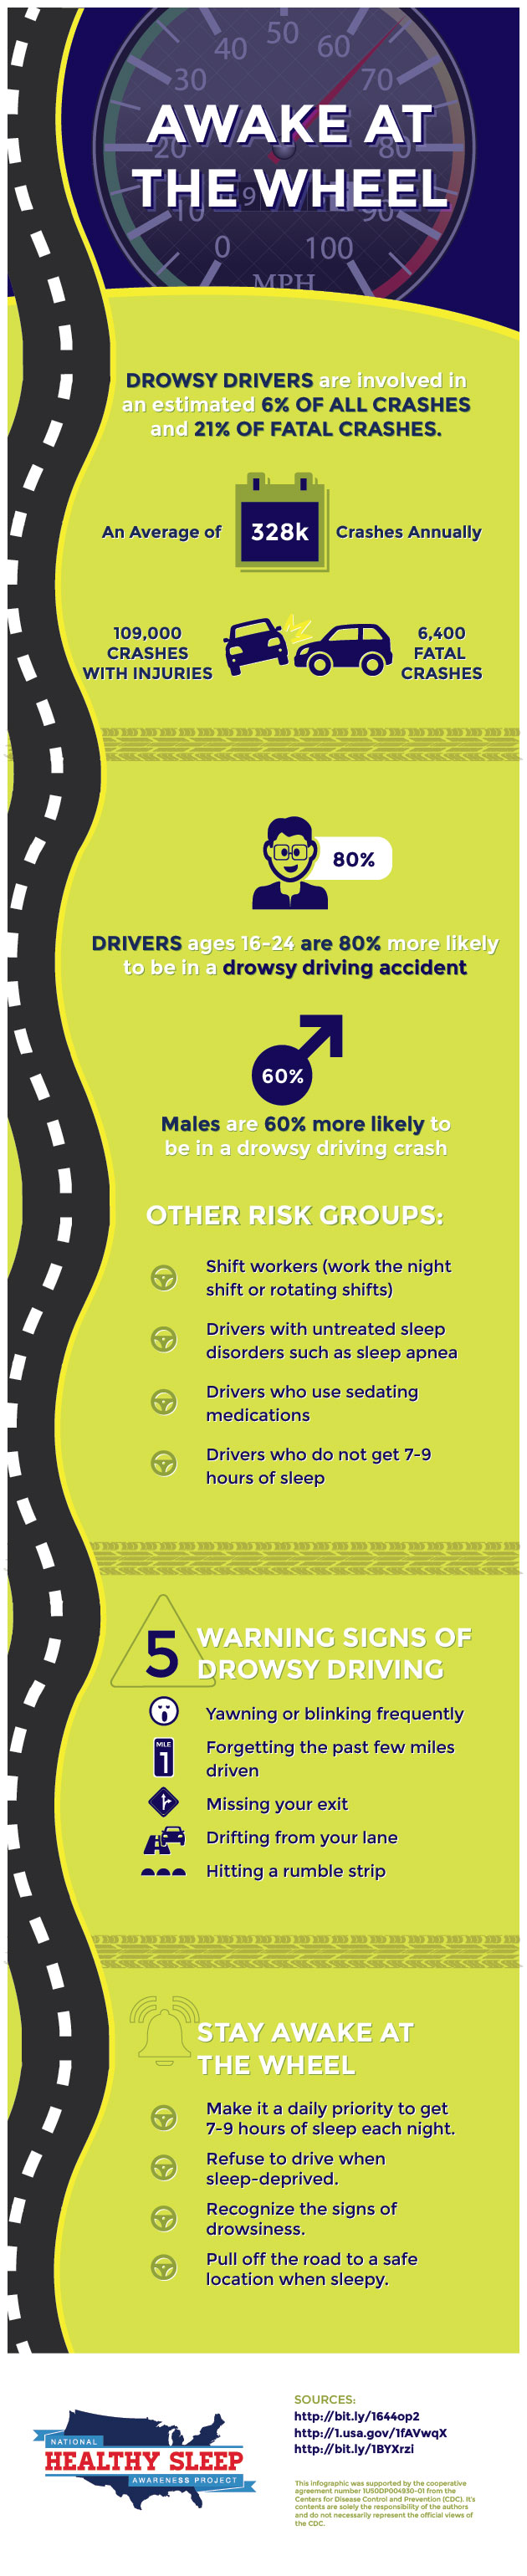 infographic about drowsy driving